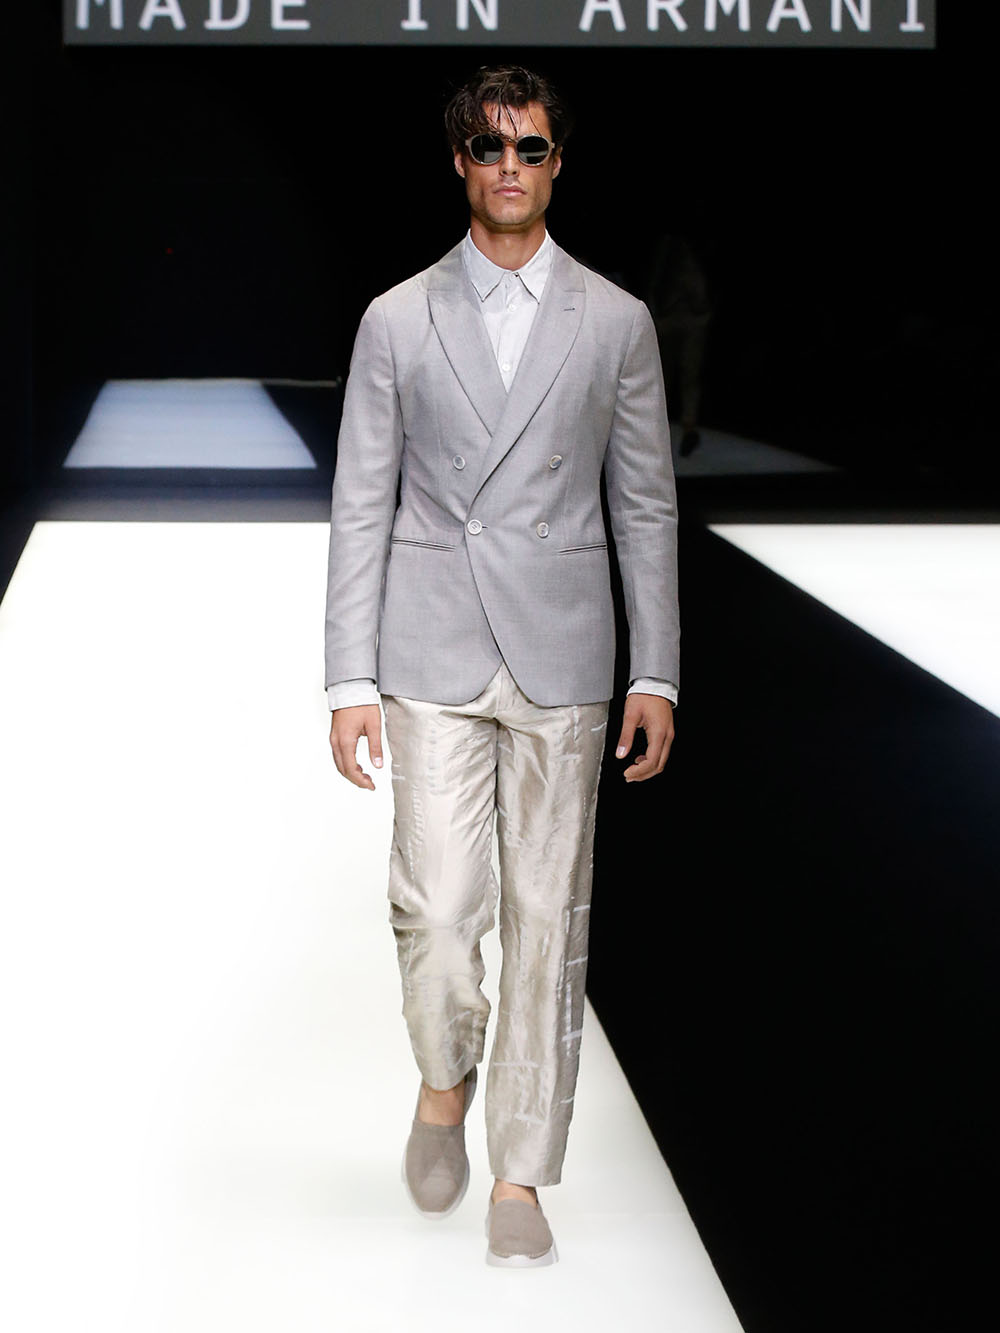 GIORGIO ARMANI_2018_SS_COLLECTION_Made in Armani (15)